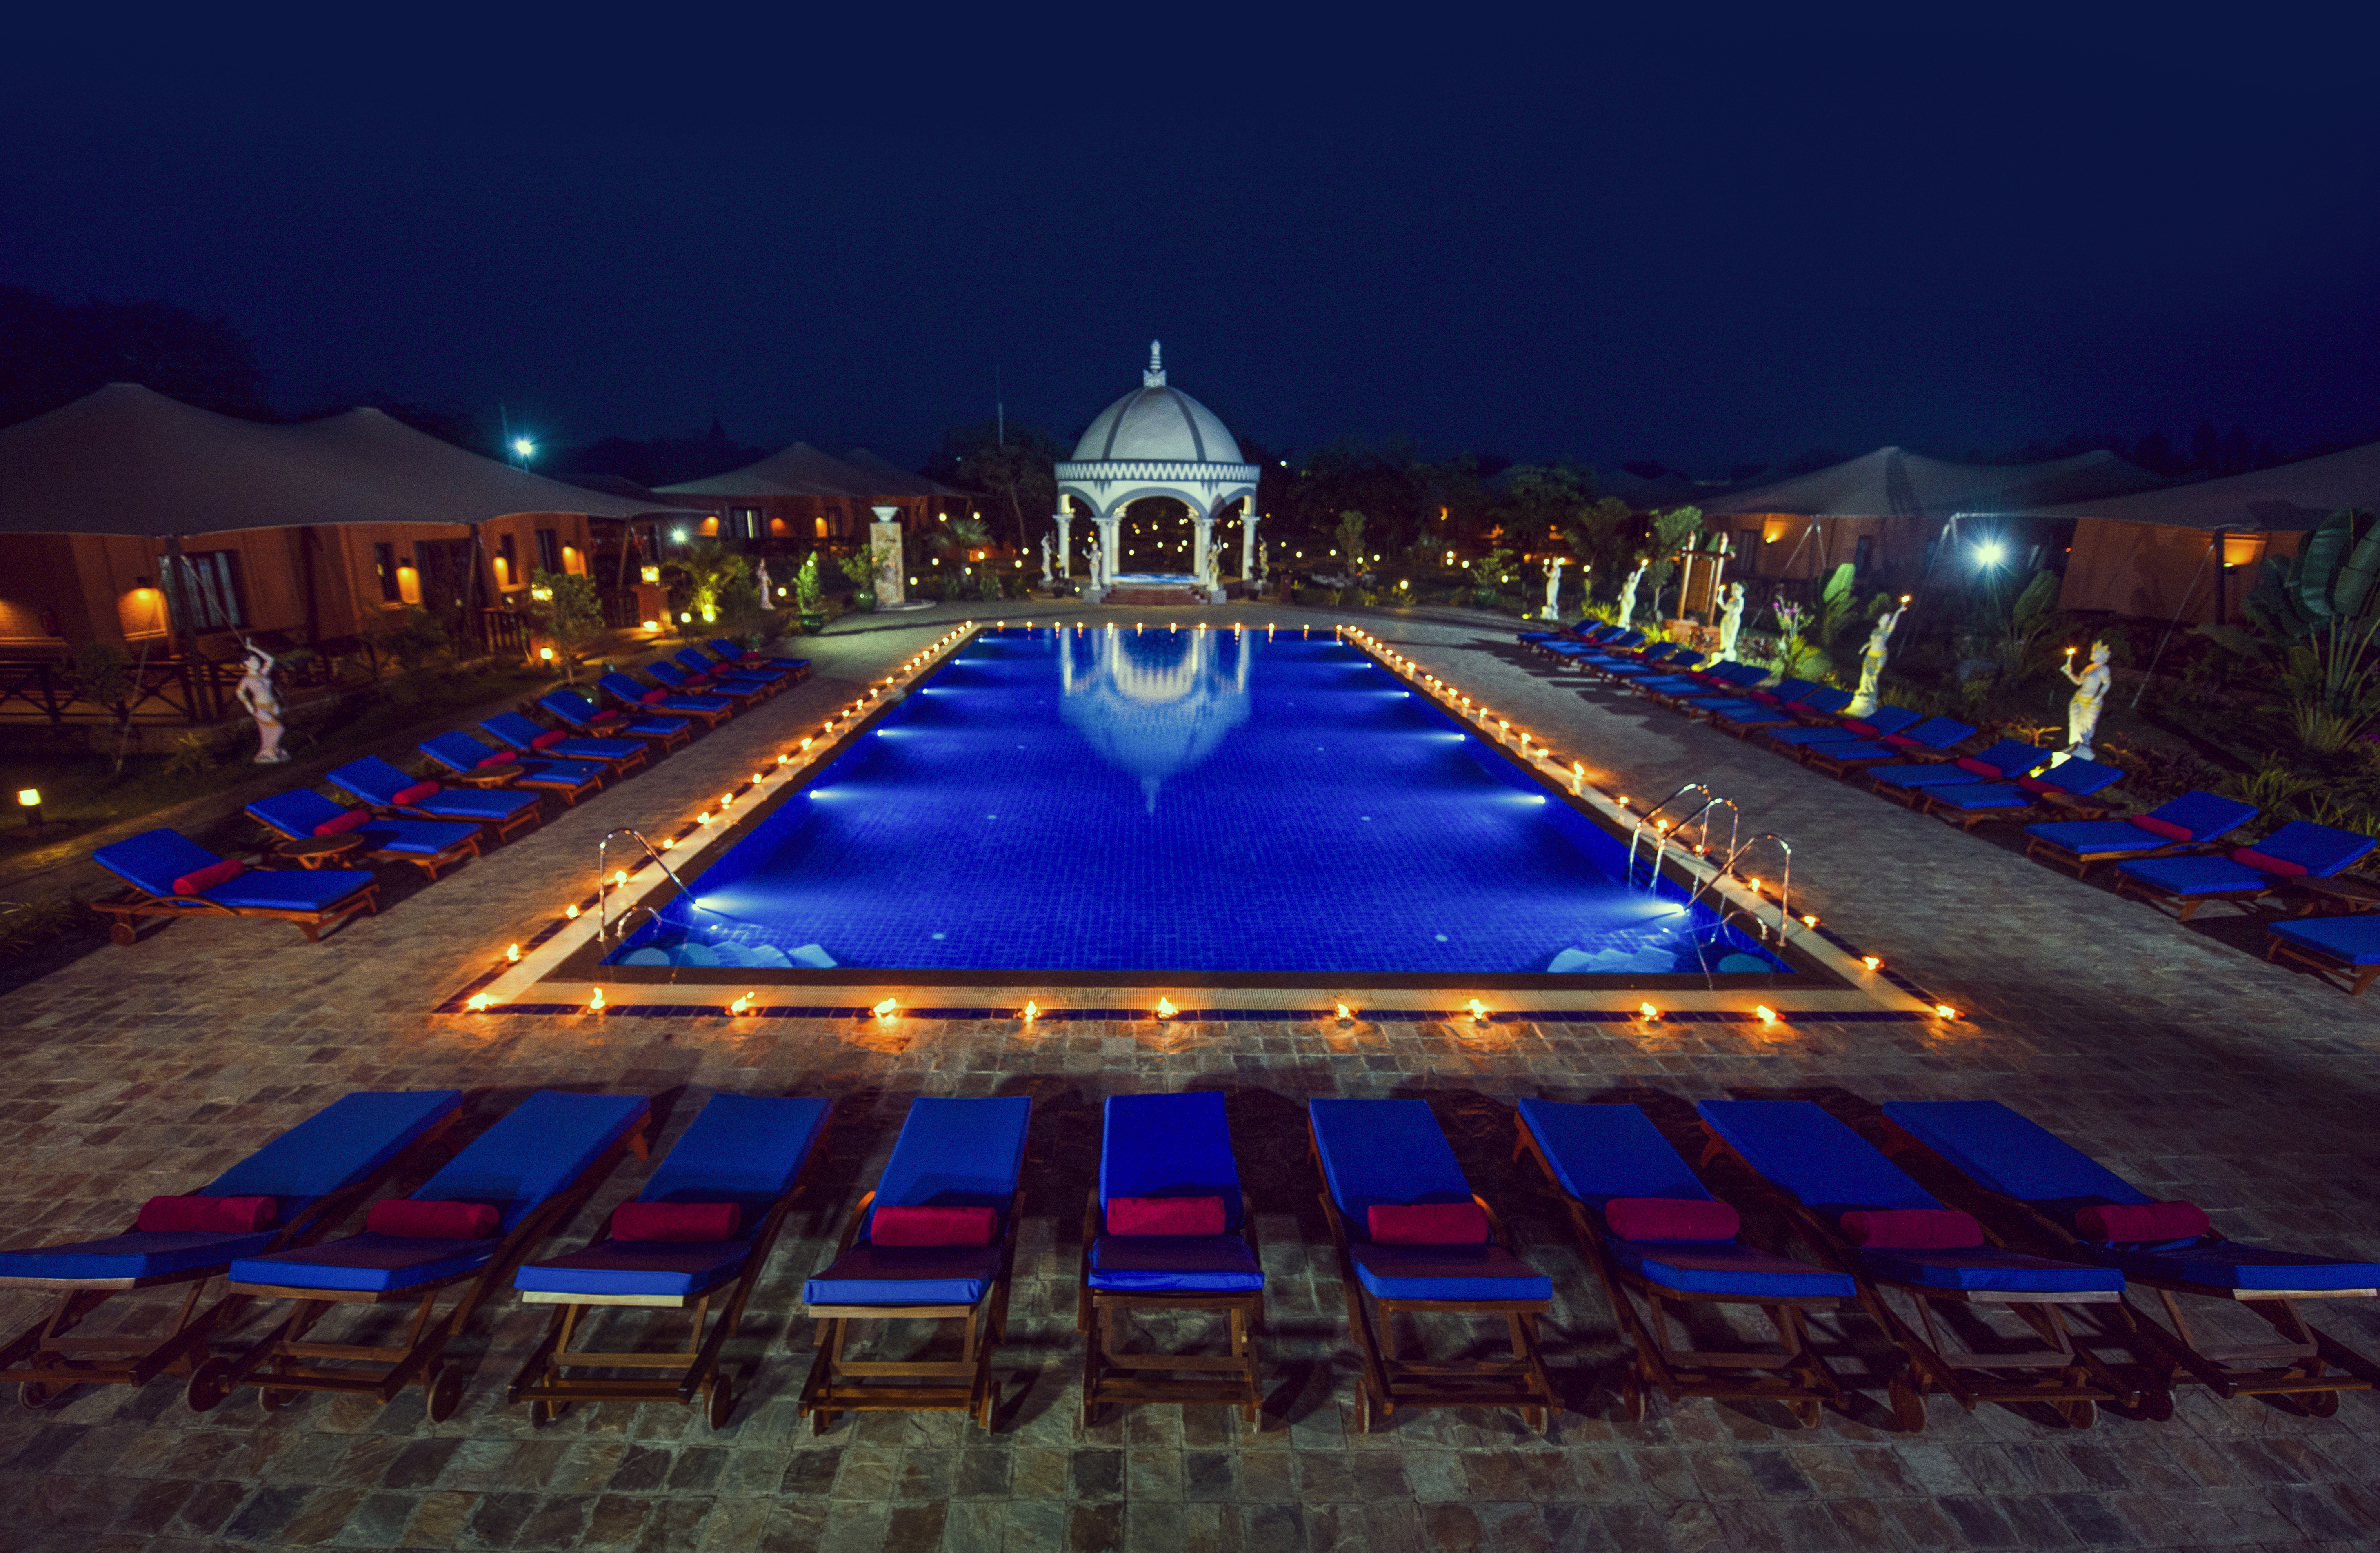 The Bagan Lodge at night